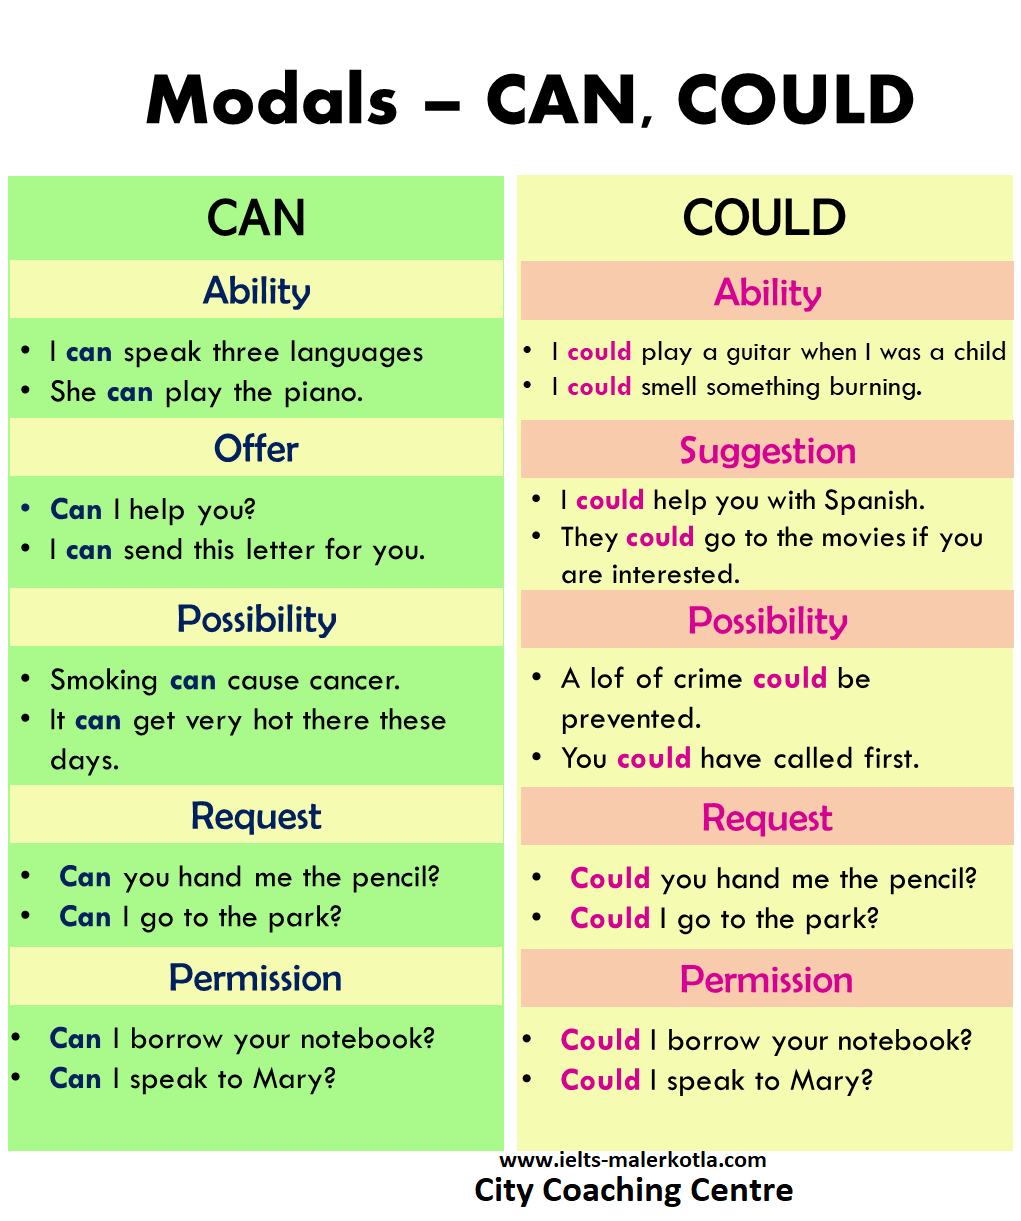 modals can could